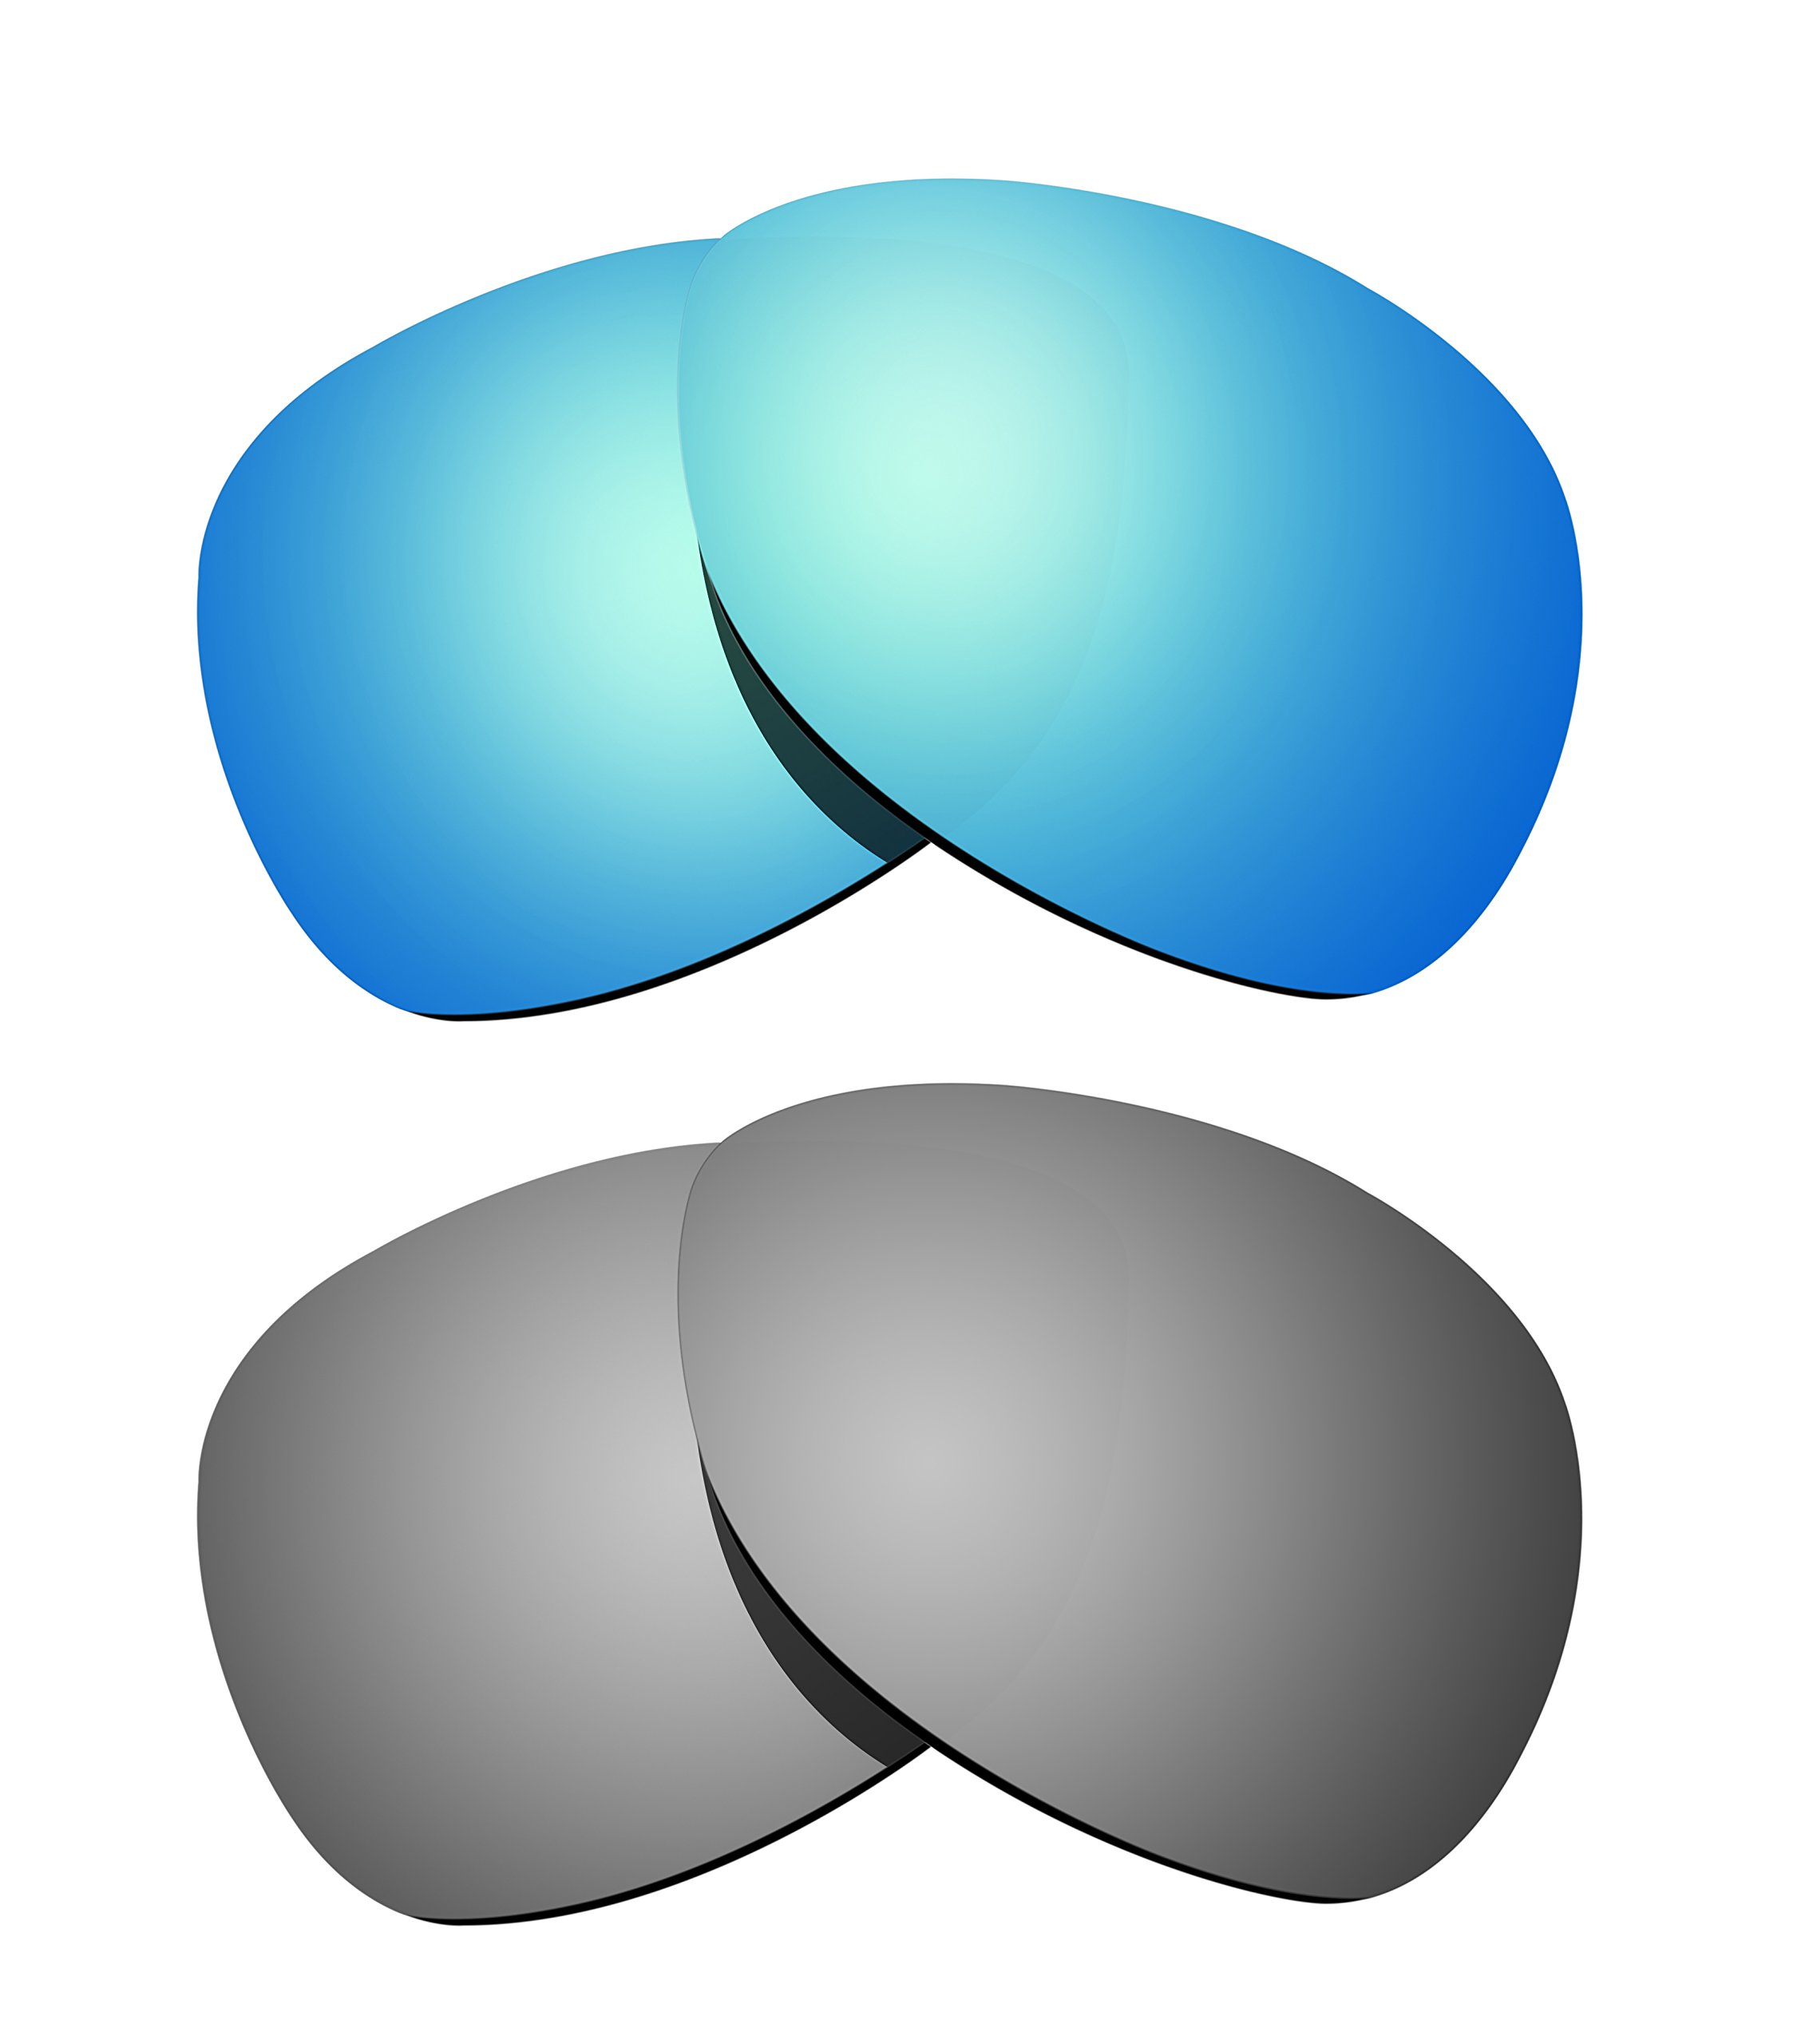 Littlebird4 2 Pairs 1.5mm Polarized Replacement Lenses for Oakley Crosshair Sunglasses - Multiple Options (Silver+Ice Blue) by Littlebird4